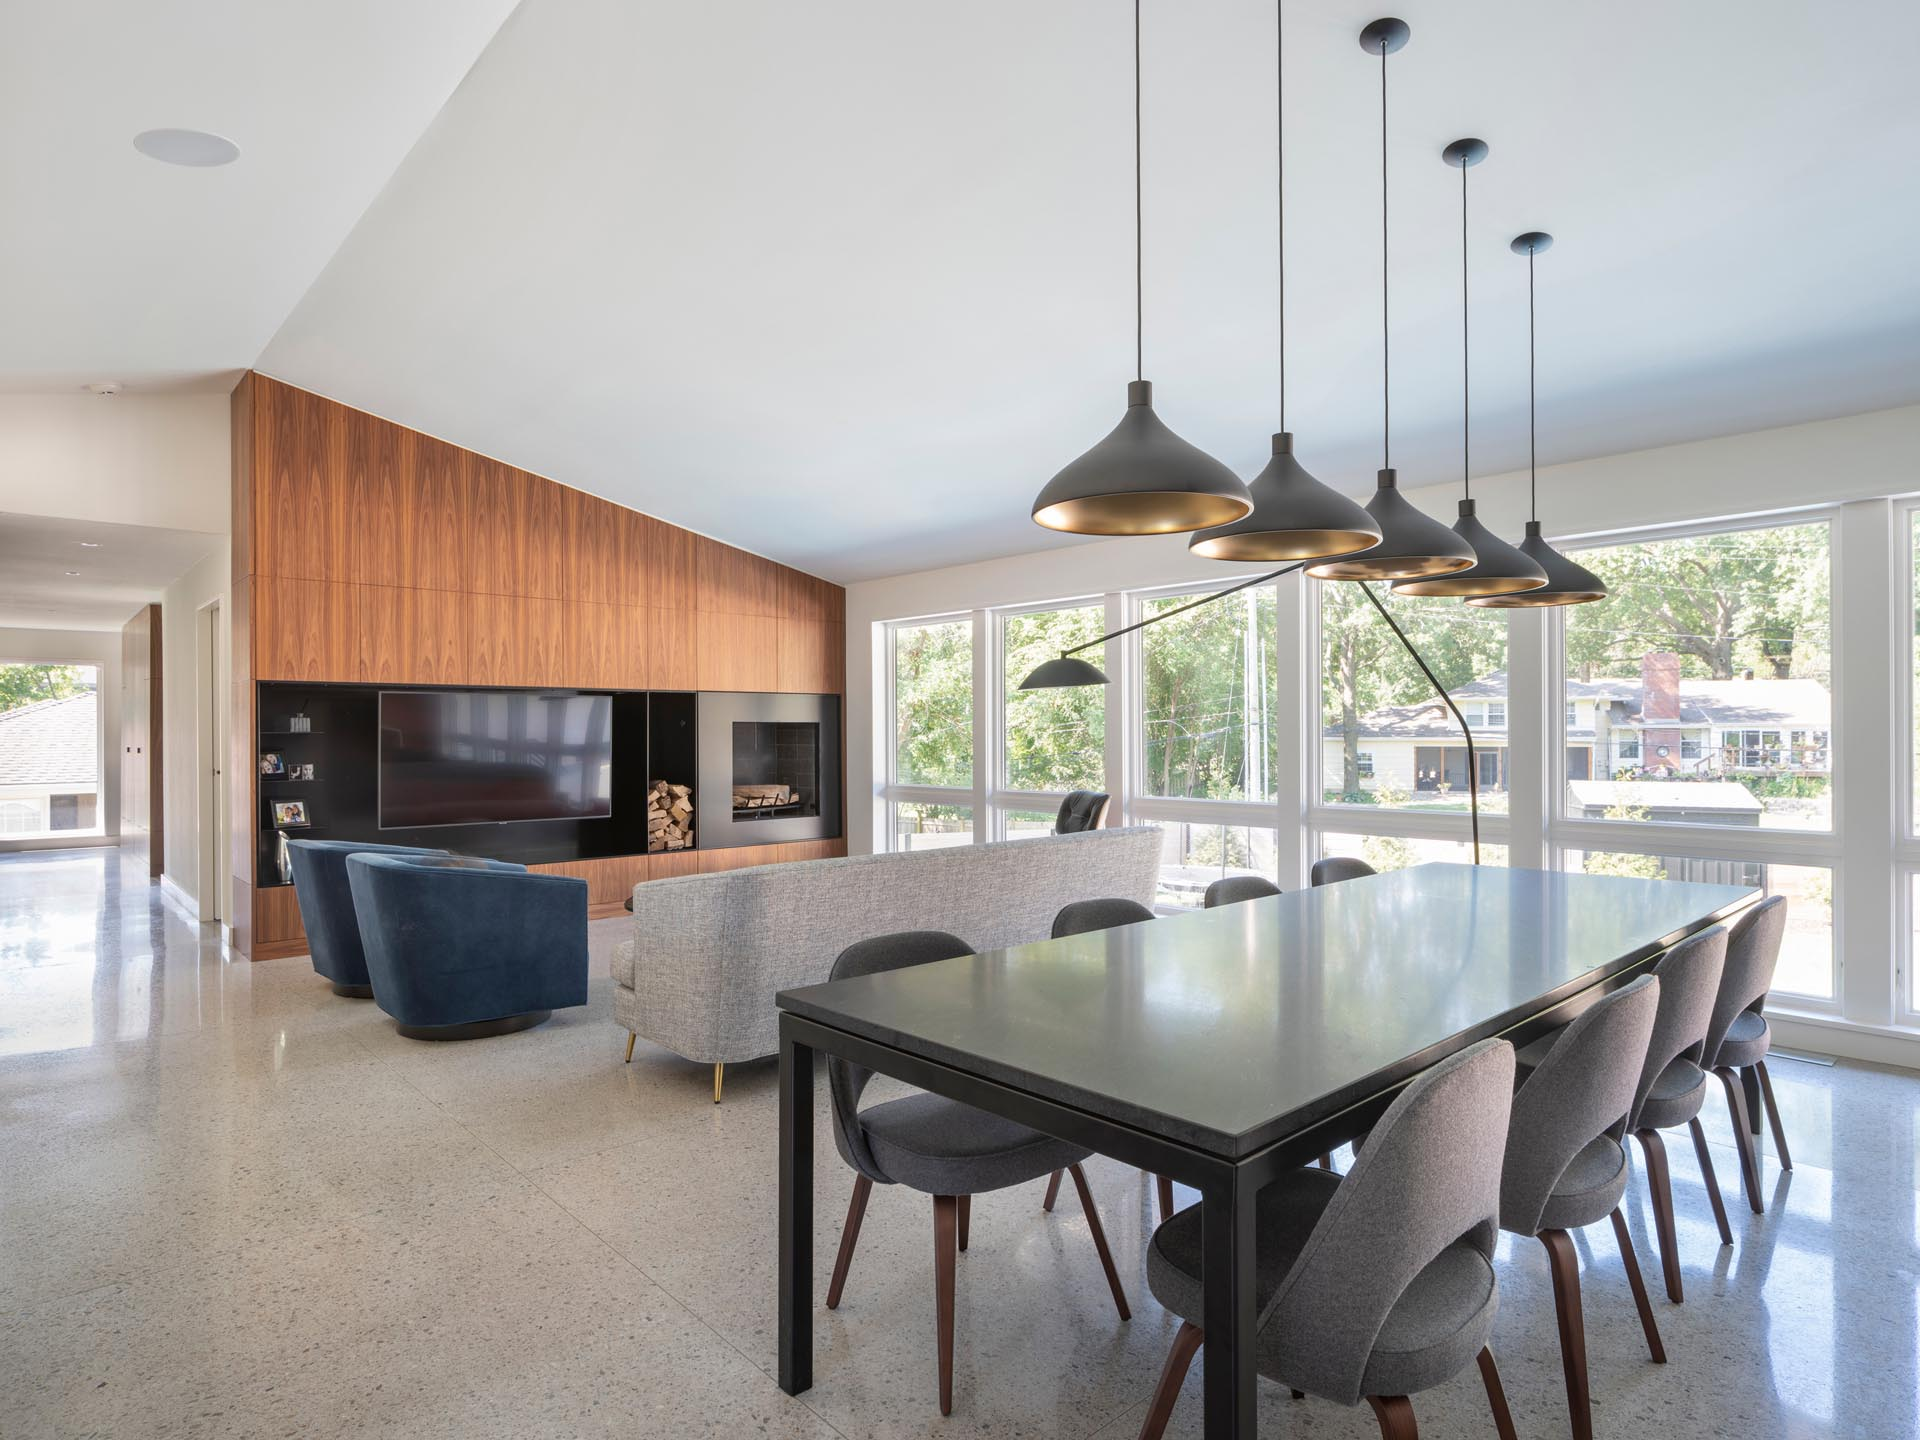 Inside, the main social areas of the house are open plan, with the dark dining table separating the living room from the kitchen.